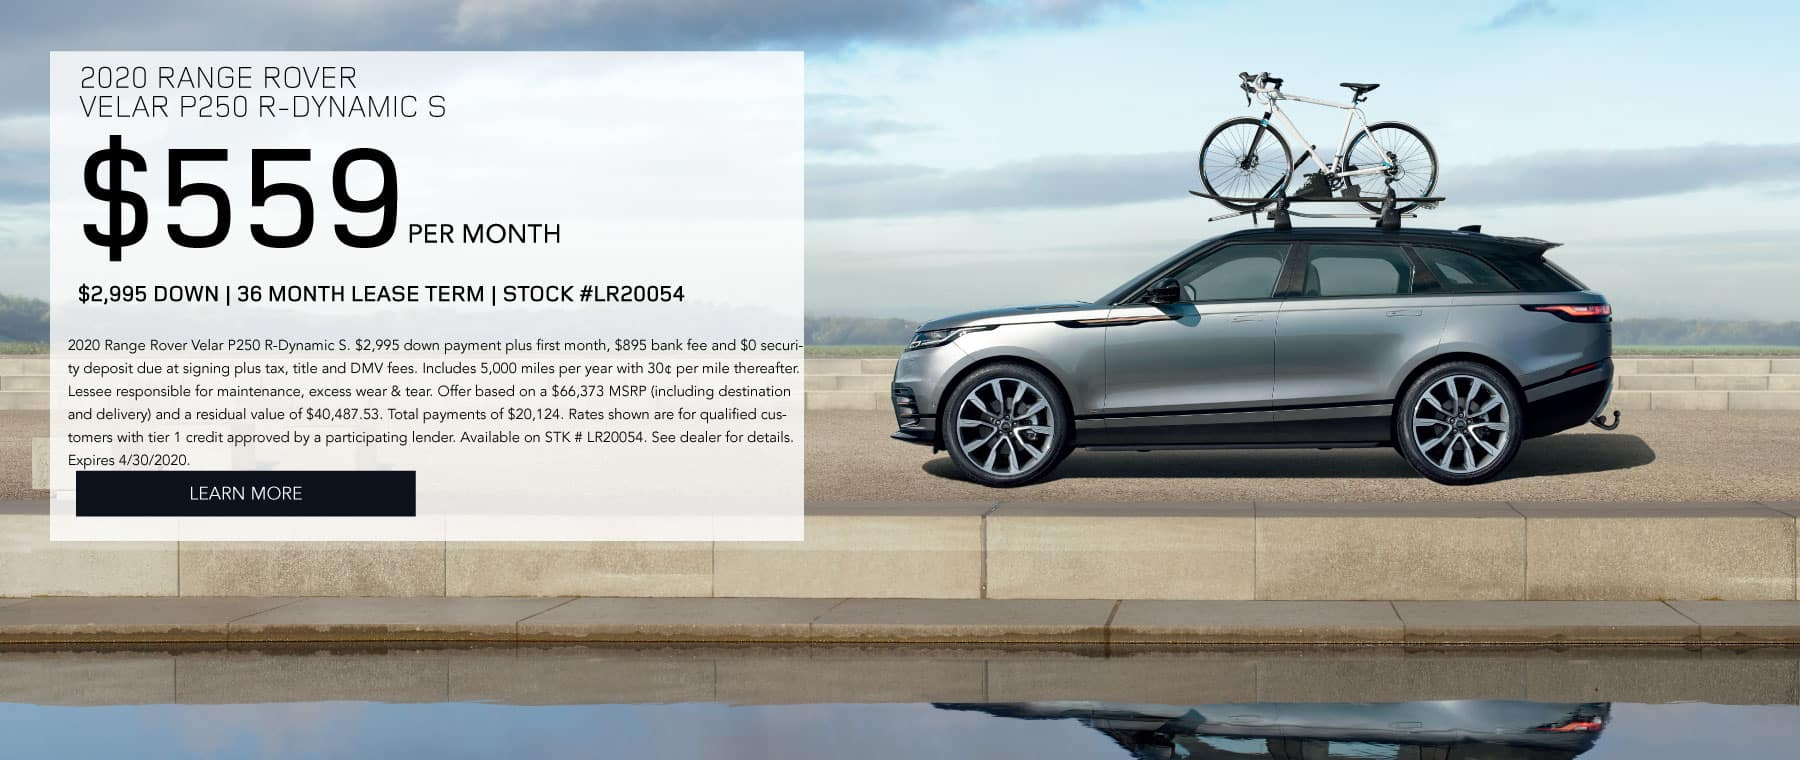 2020 RANGE ROVER  VELAR P250 S. $468 per month. $2995 down. 39 month lease term. Stock #LR20830. $1000 bonus credit. 2020 Range Rover Velar P250 S. $2,995 down payment plus first month, $895 bank fee and $0 security deposit due at signing plus tax, title and DMV fees. Includes 5,000 miles per year with 30¢ per mile thereafter. Lessee responsible for maintenance, excess wear & tear. Offer based on a $60,967 MSRP (including destination and delivery) and a residual value of $38,409.21. Total payments of $18,252. Rates shown are for qualified customers with tier 1 credit approved by a participating lender. Available on STK # LR20830. See dealer for details. Expires 3/2/2020. Click to learn more. Grey Velar driving down foggy road with rocks around.